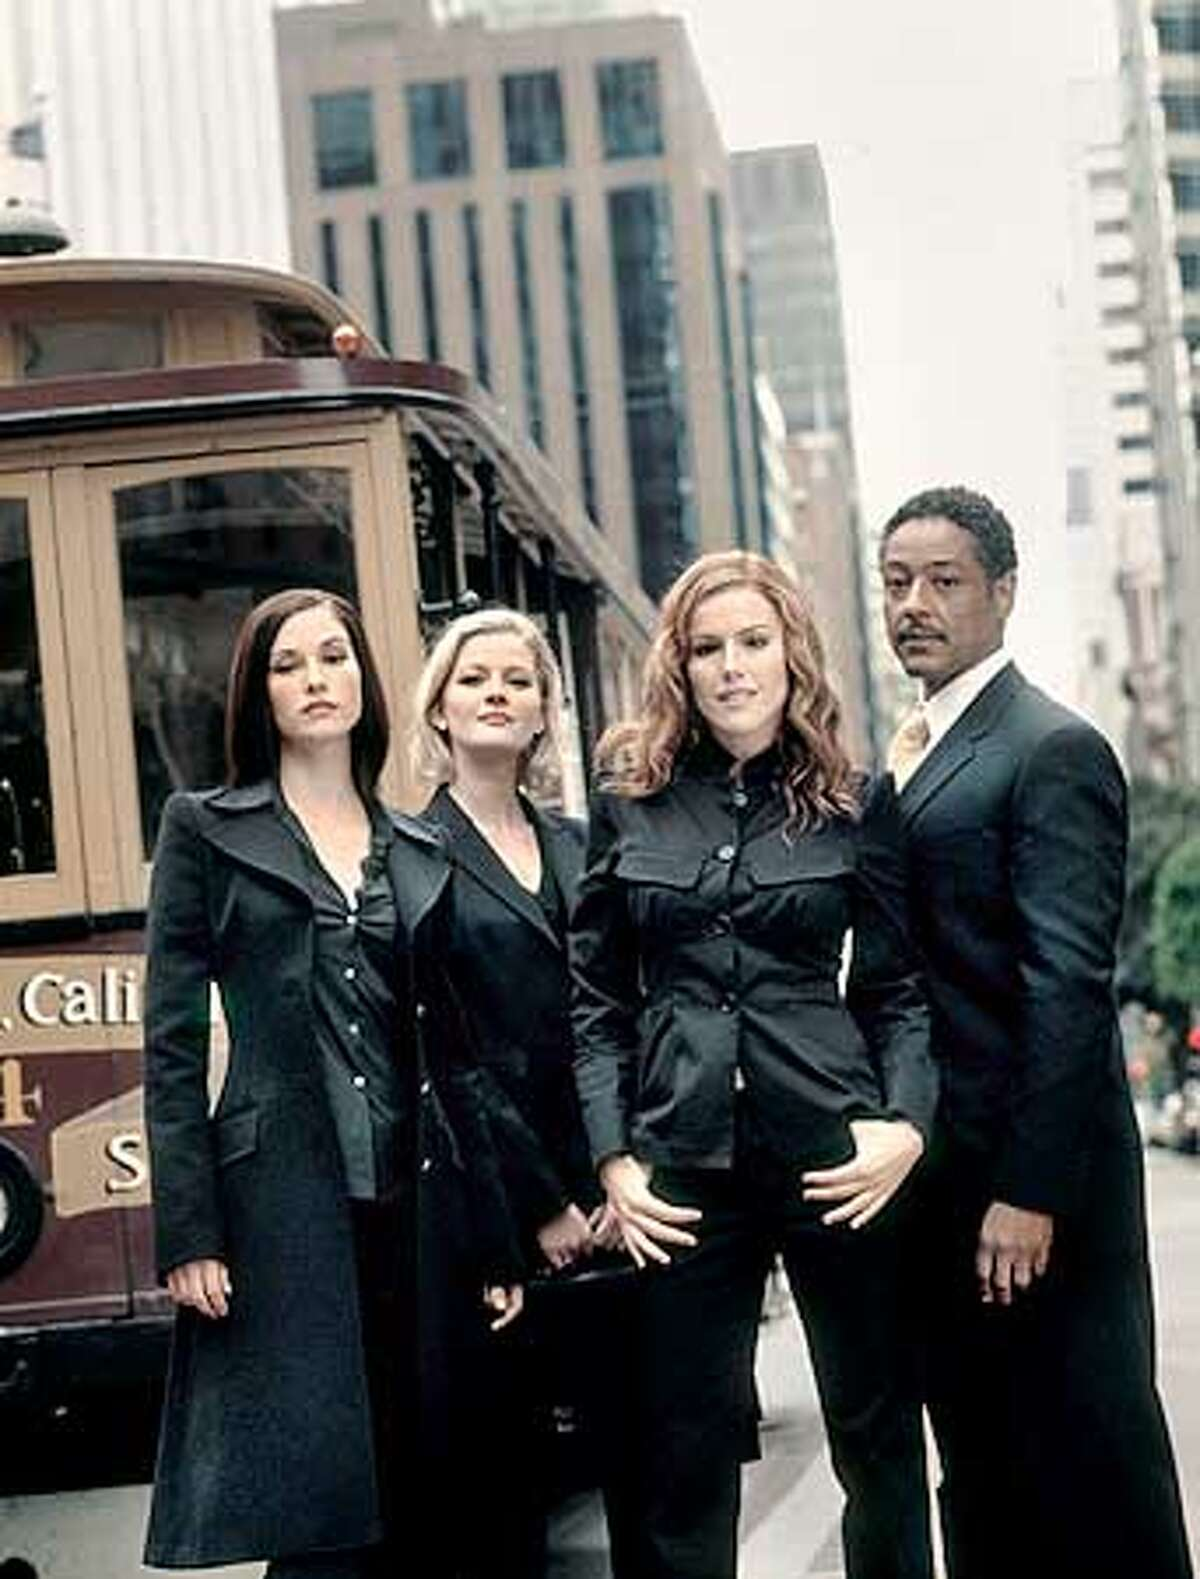 Giancarlo Esposito (right) has an interesting role, but some eyes won't wander from (from left) Chyler Leigh, Gretchen Moll and Kathleen Robertson.